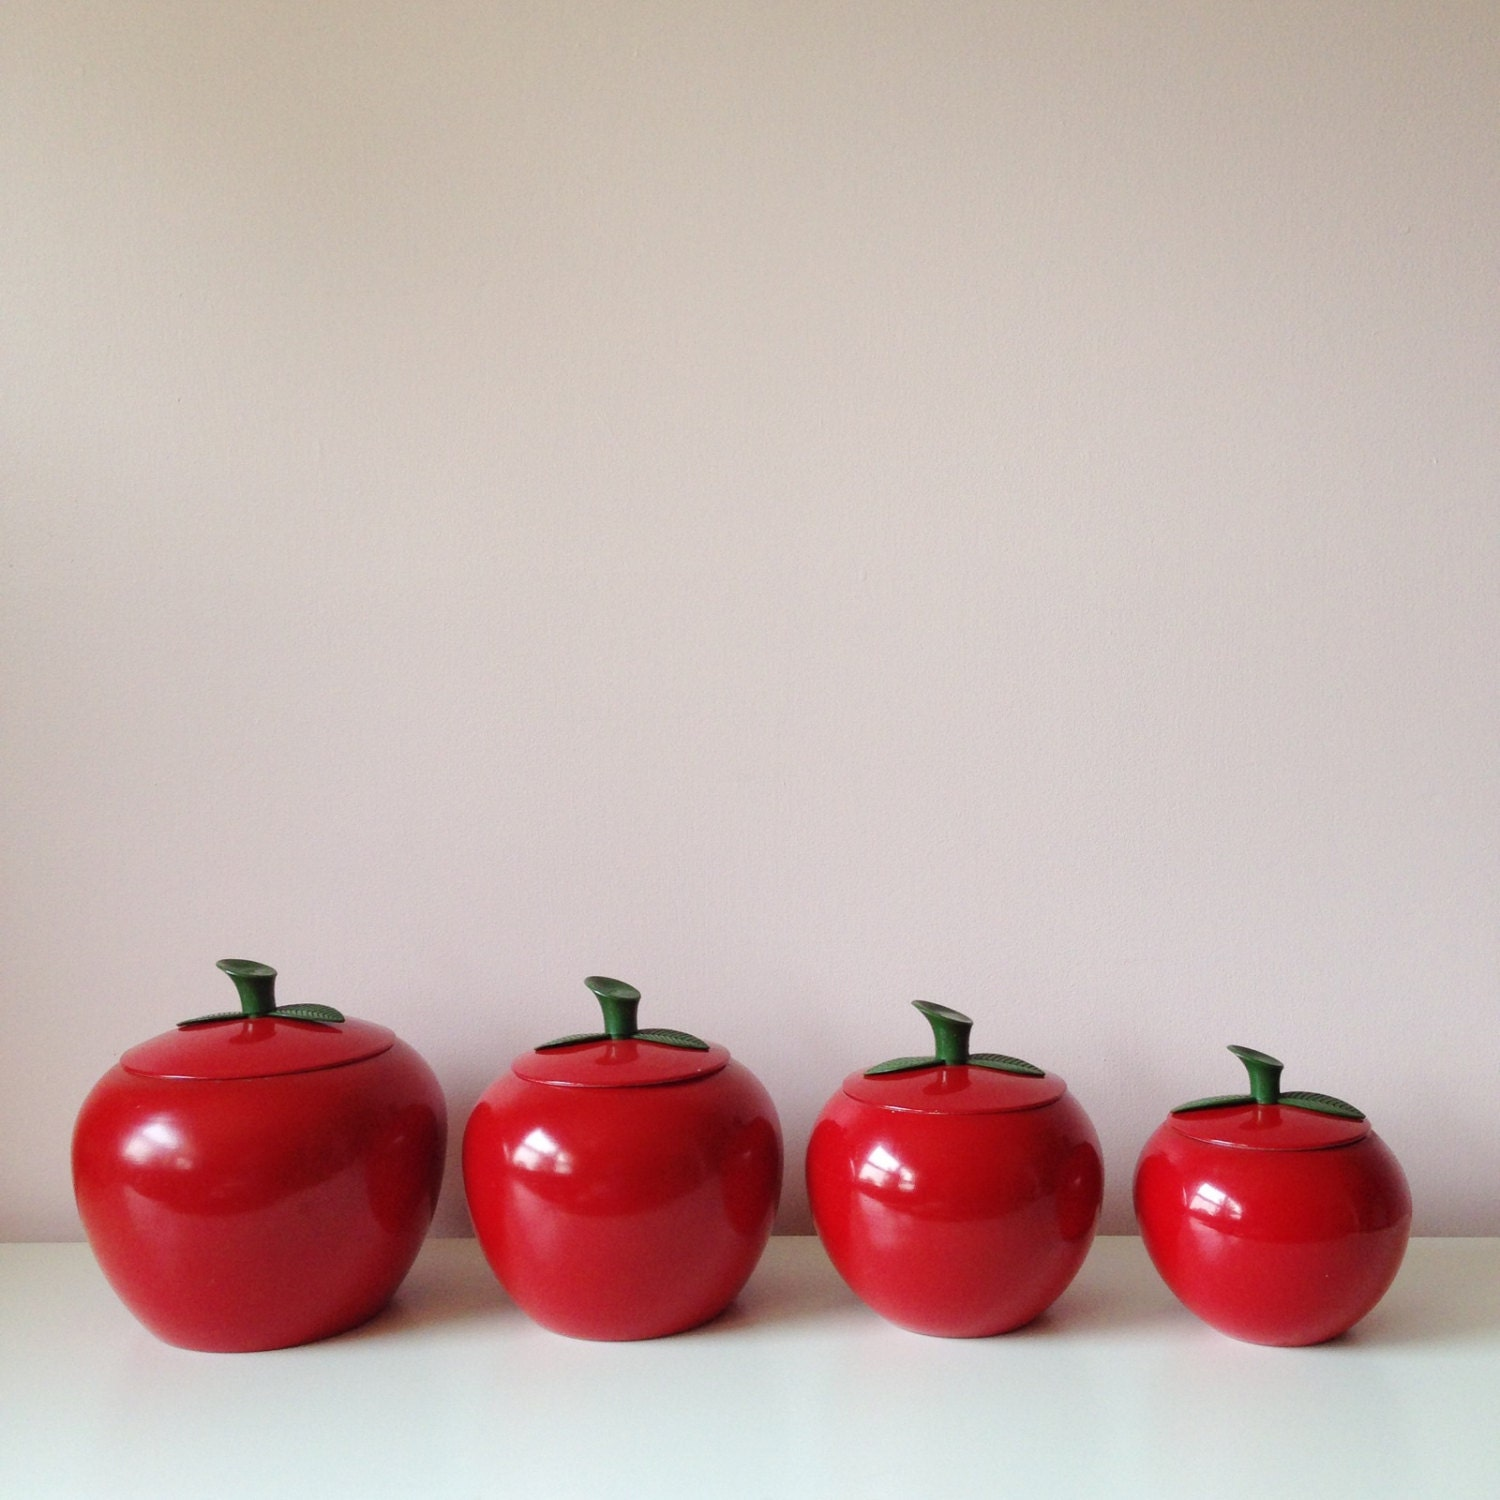 Vintage HAPPY APPLE Canisters / Aluminum Red Kitchen